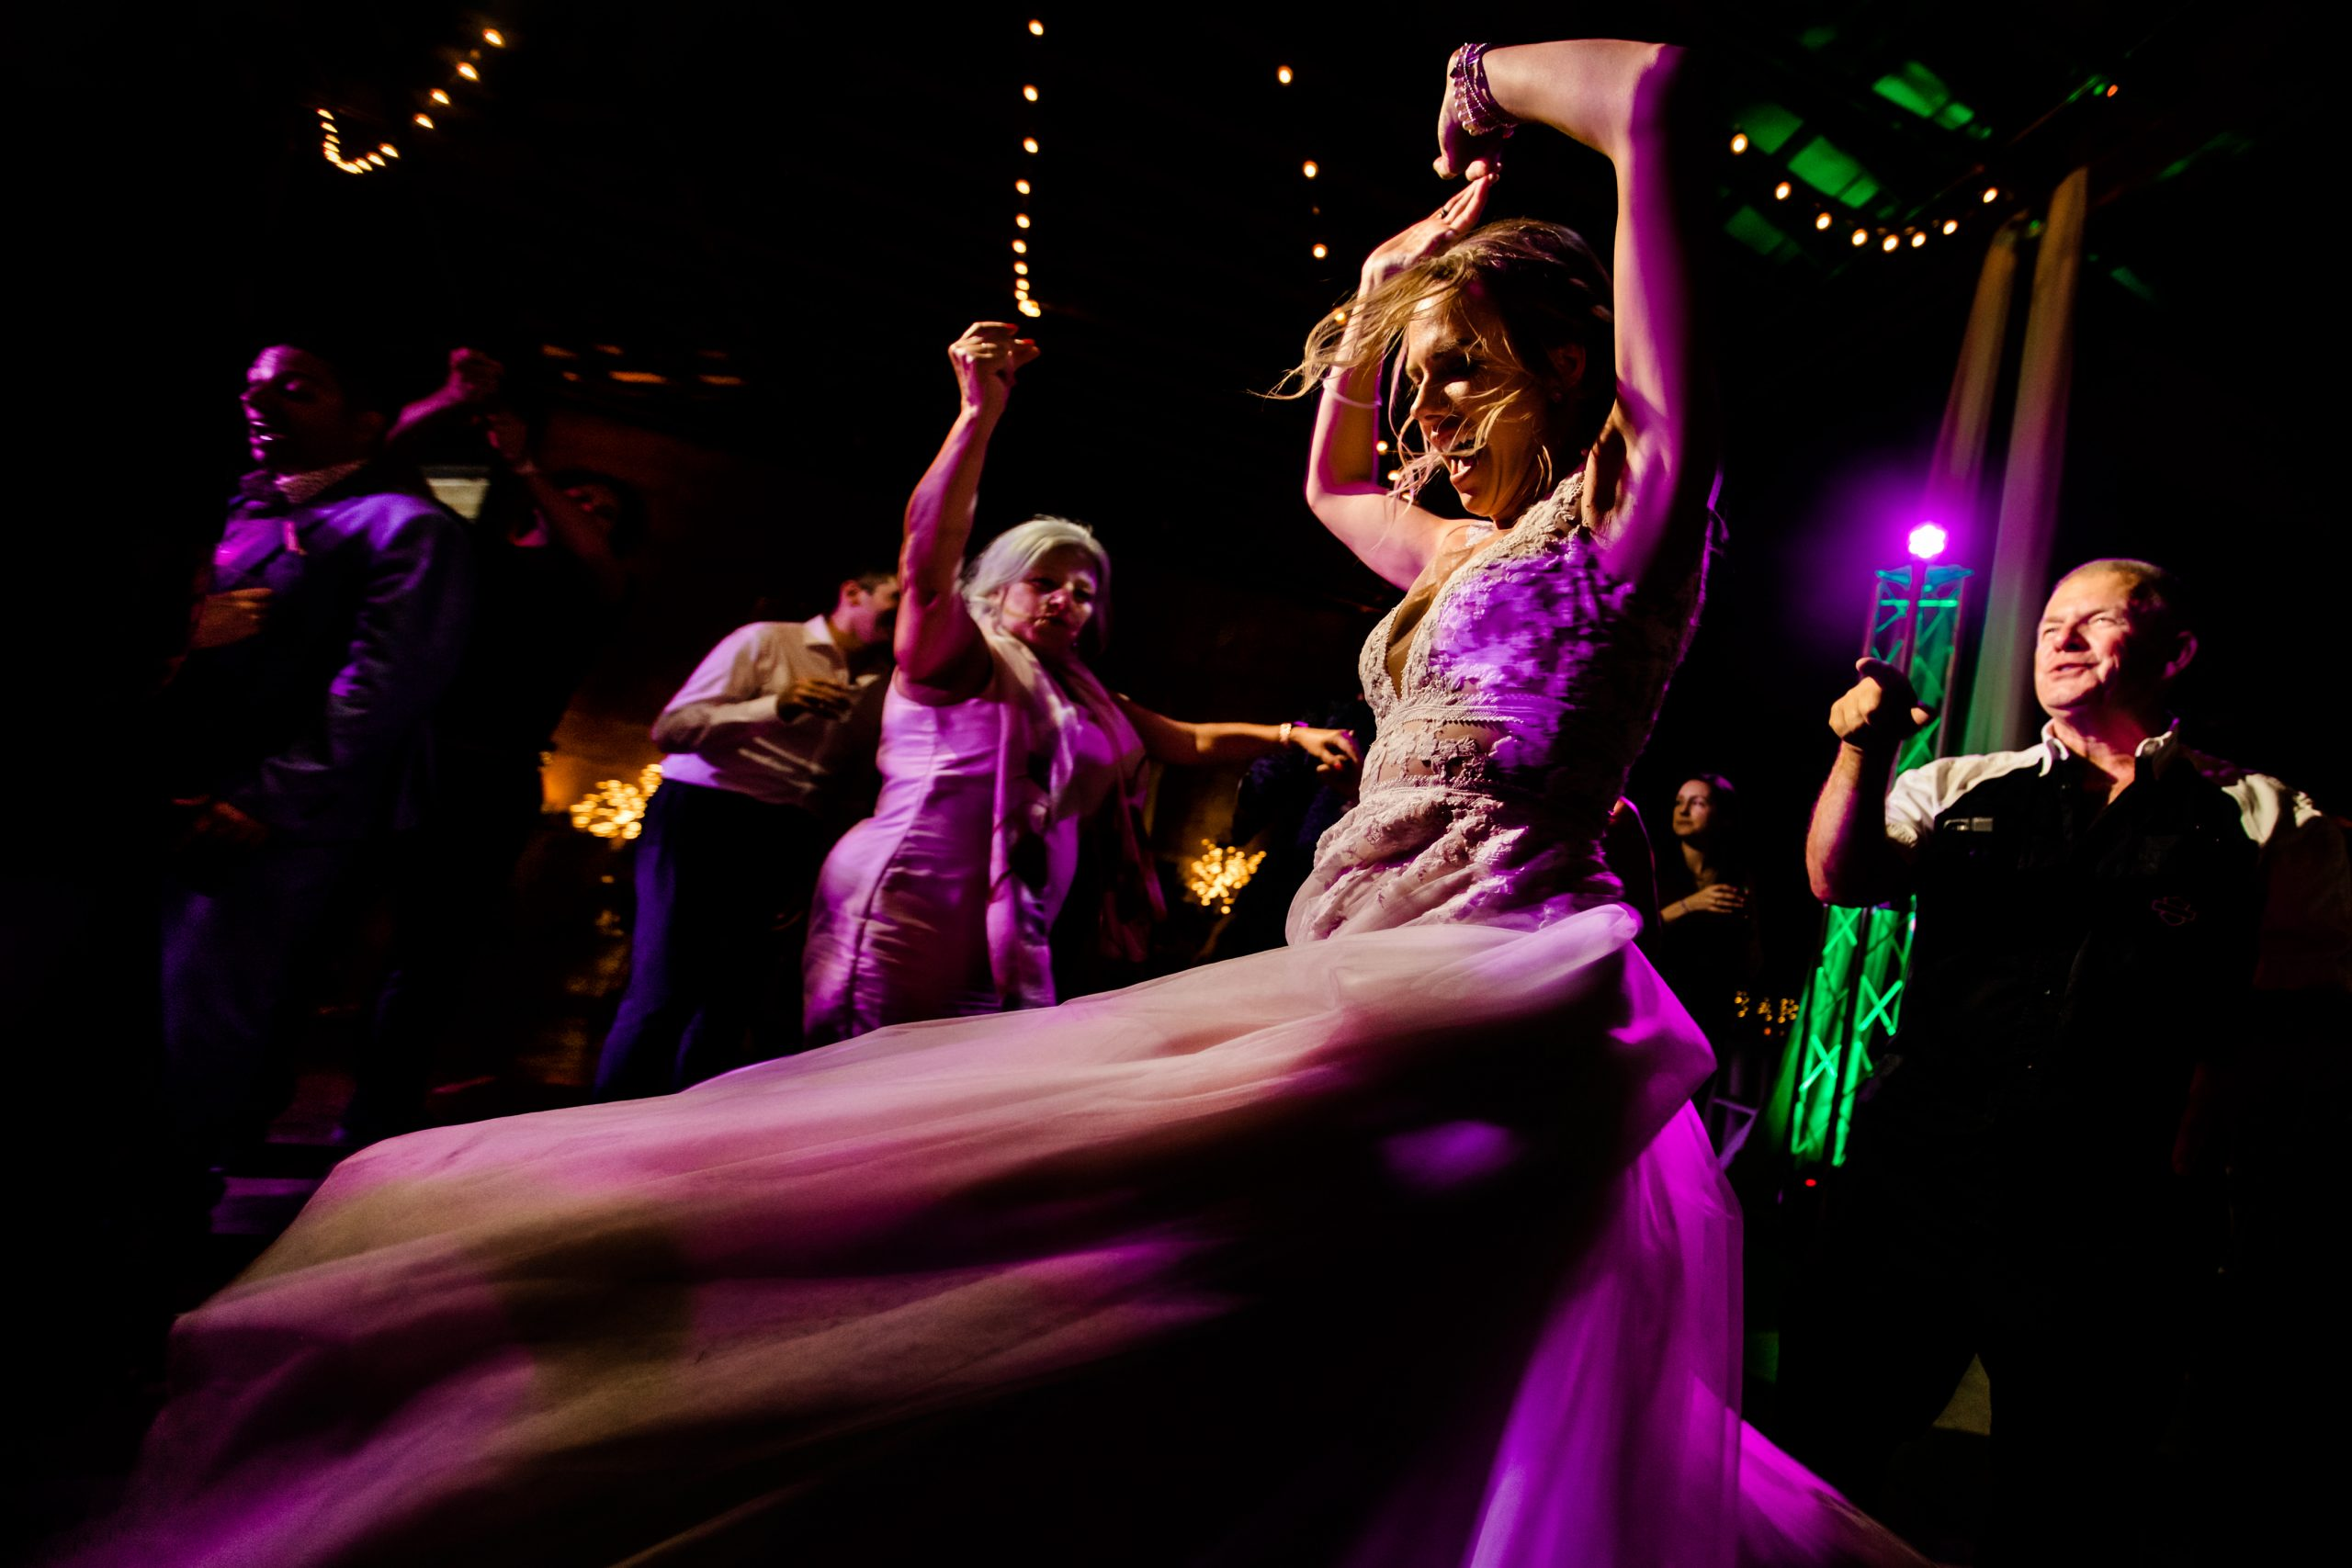 Bride's dress flows as she dances at her wedding reception.